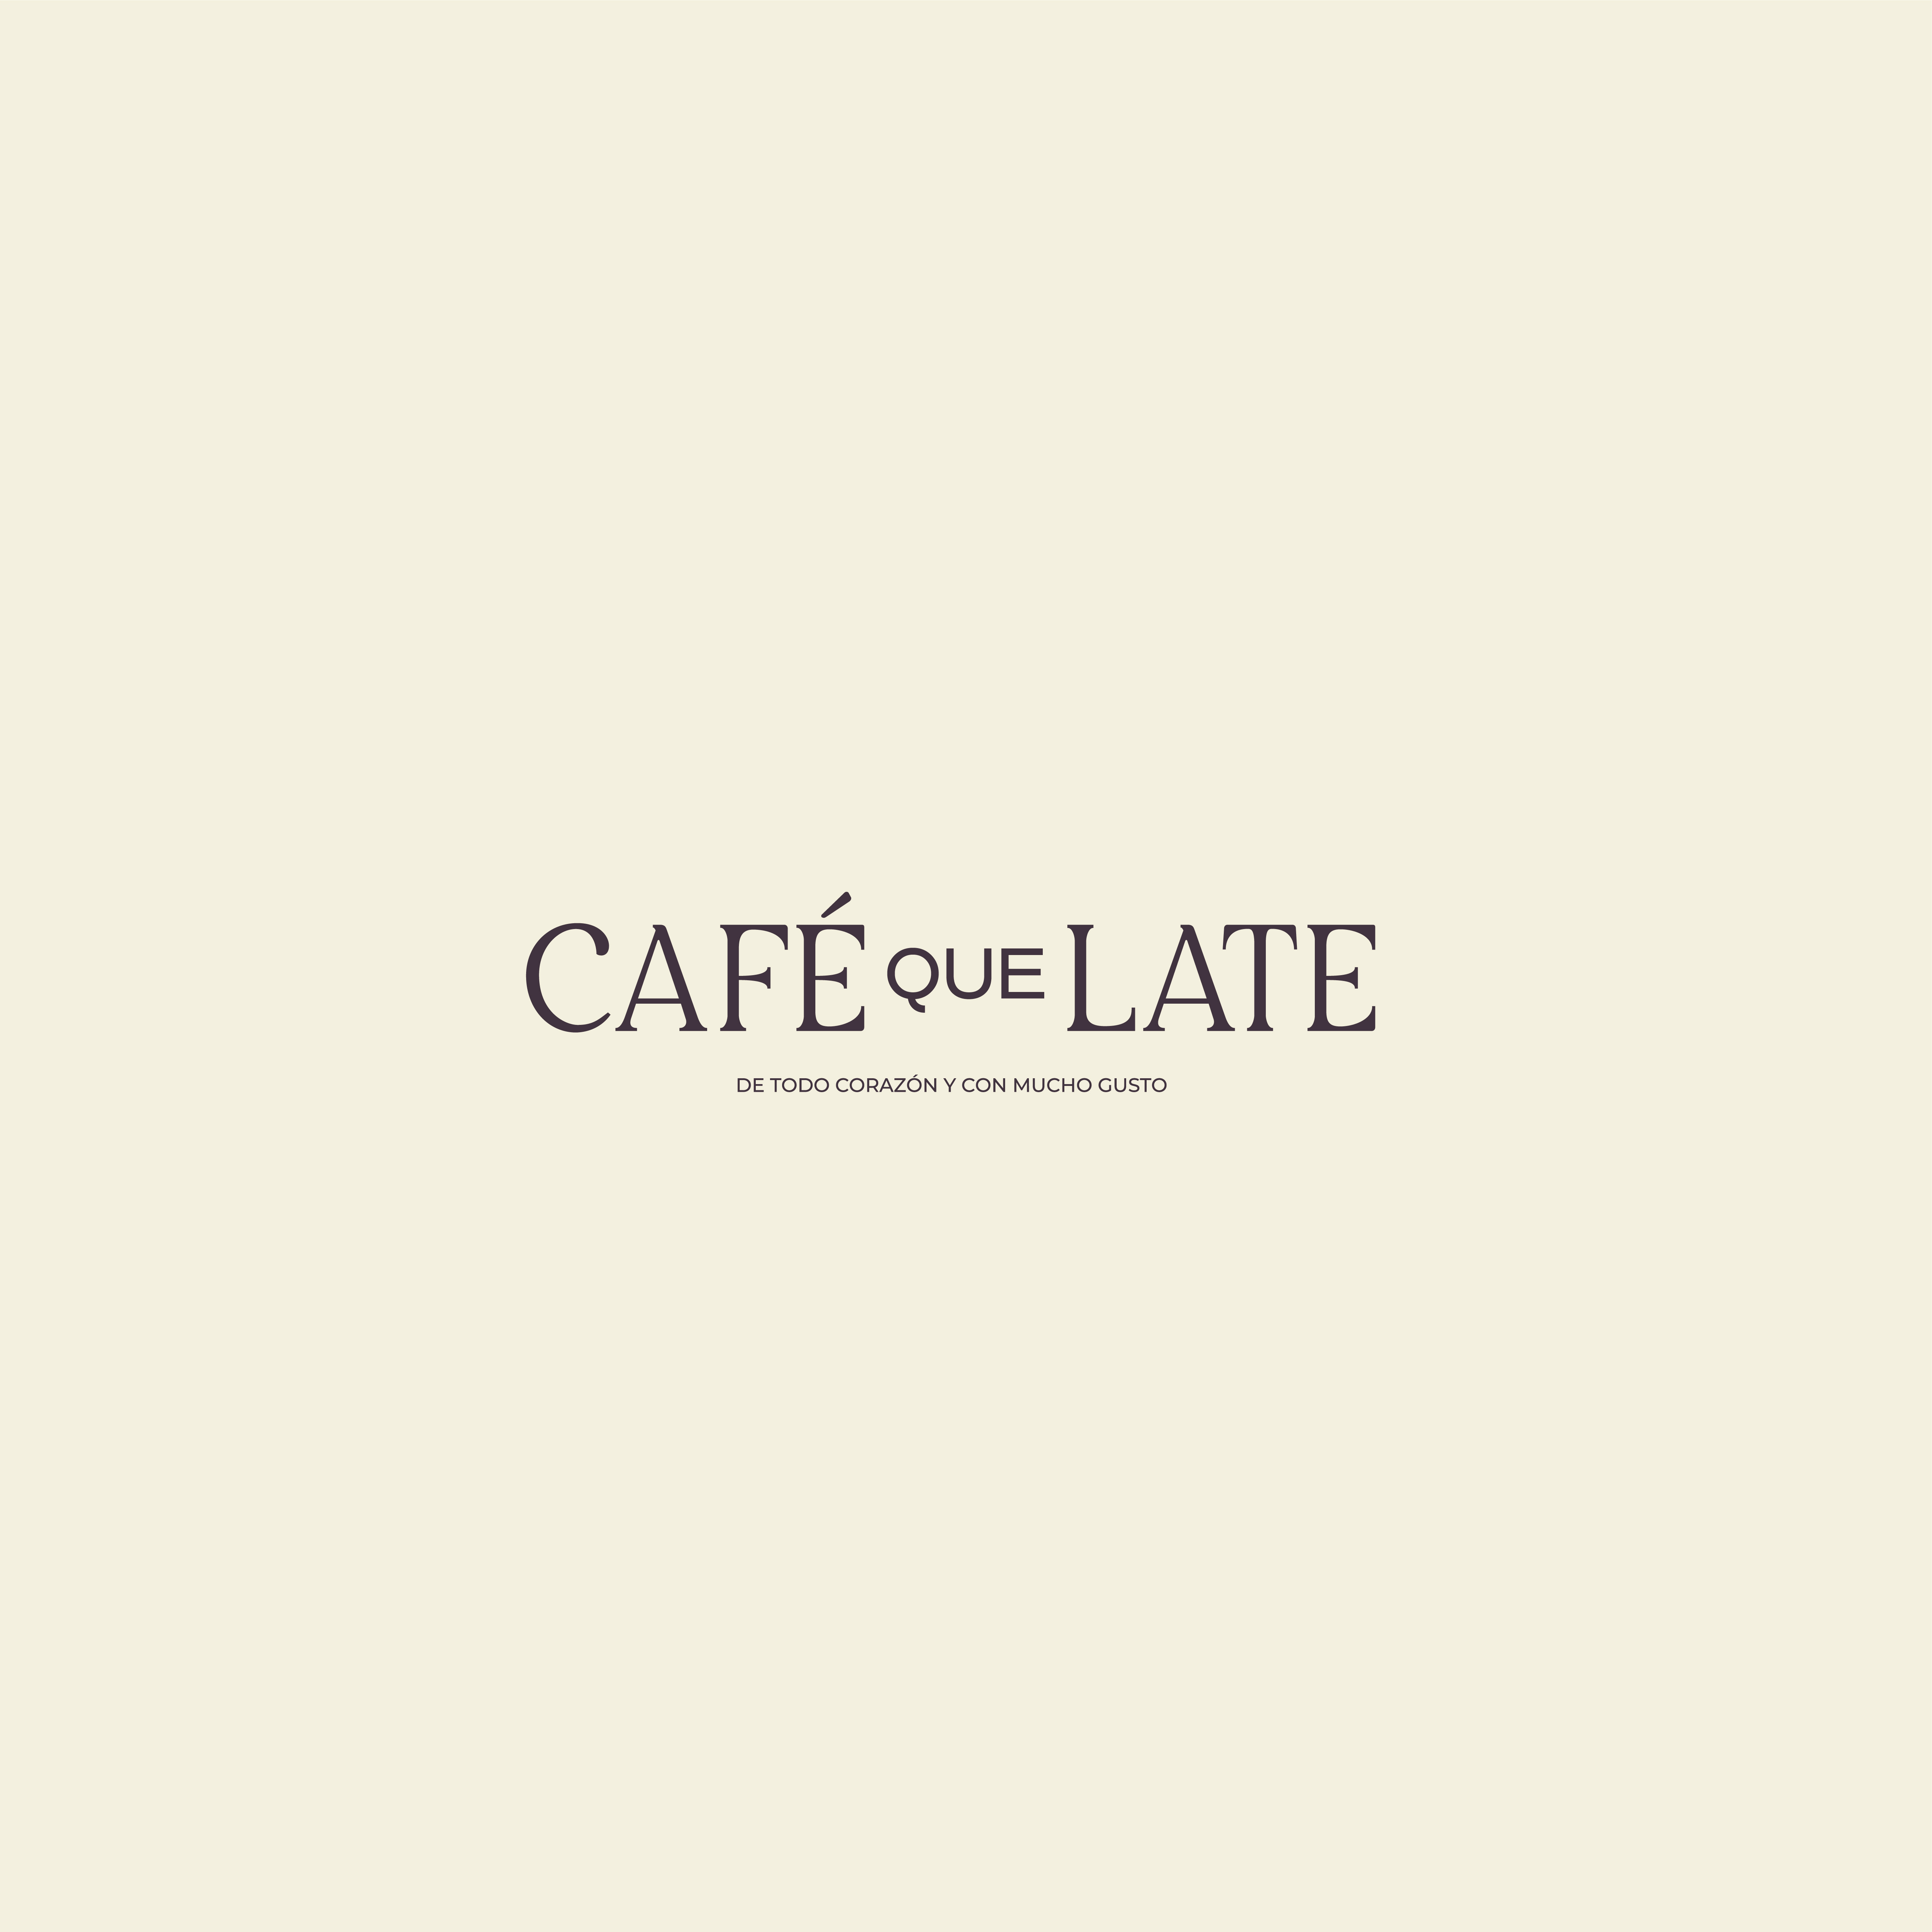 Concept Identity and Packaging Design for Café que Late by Ligero